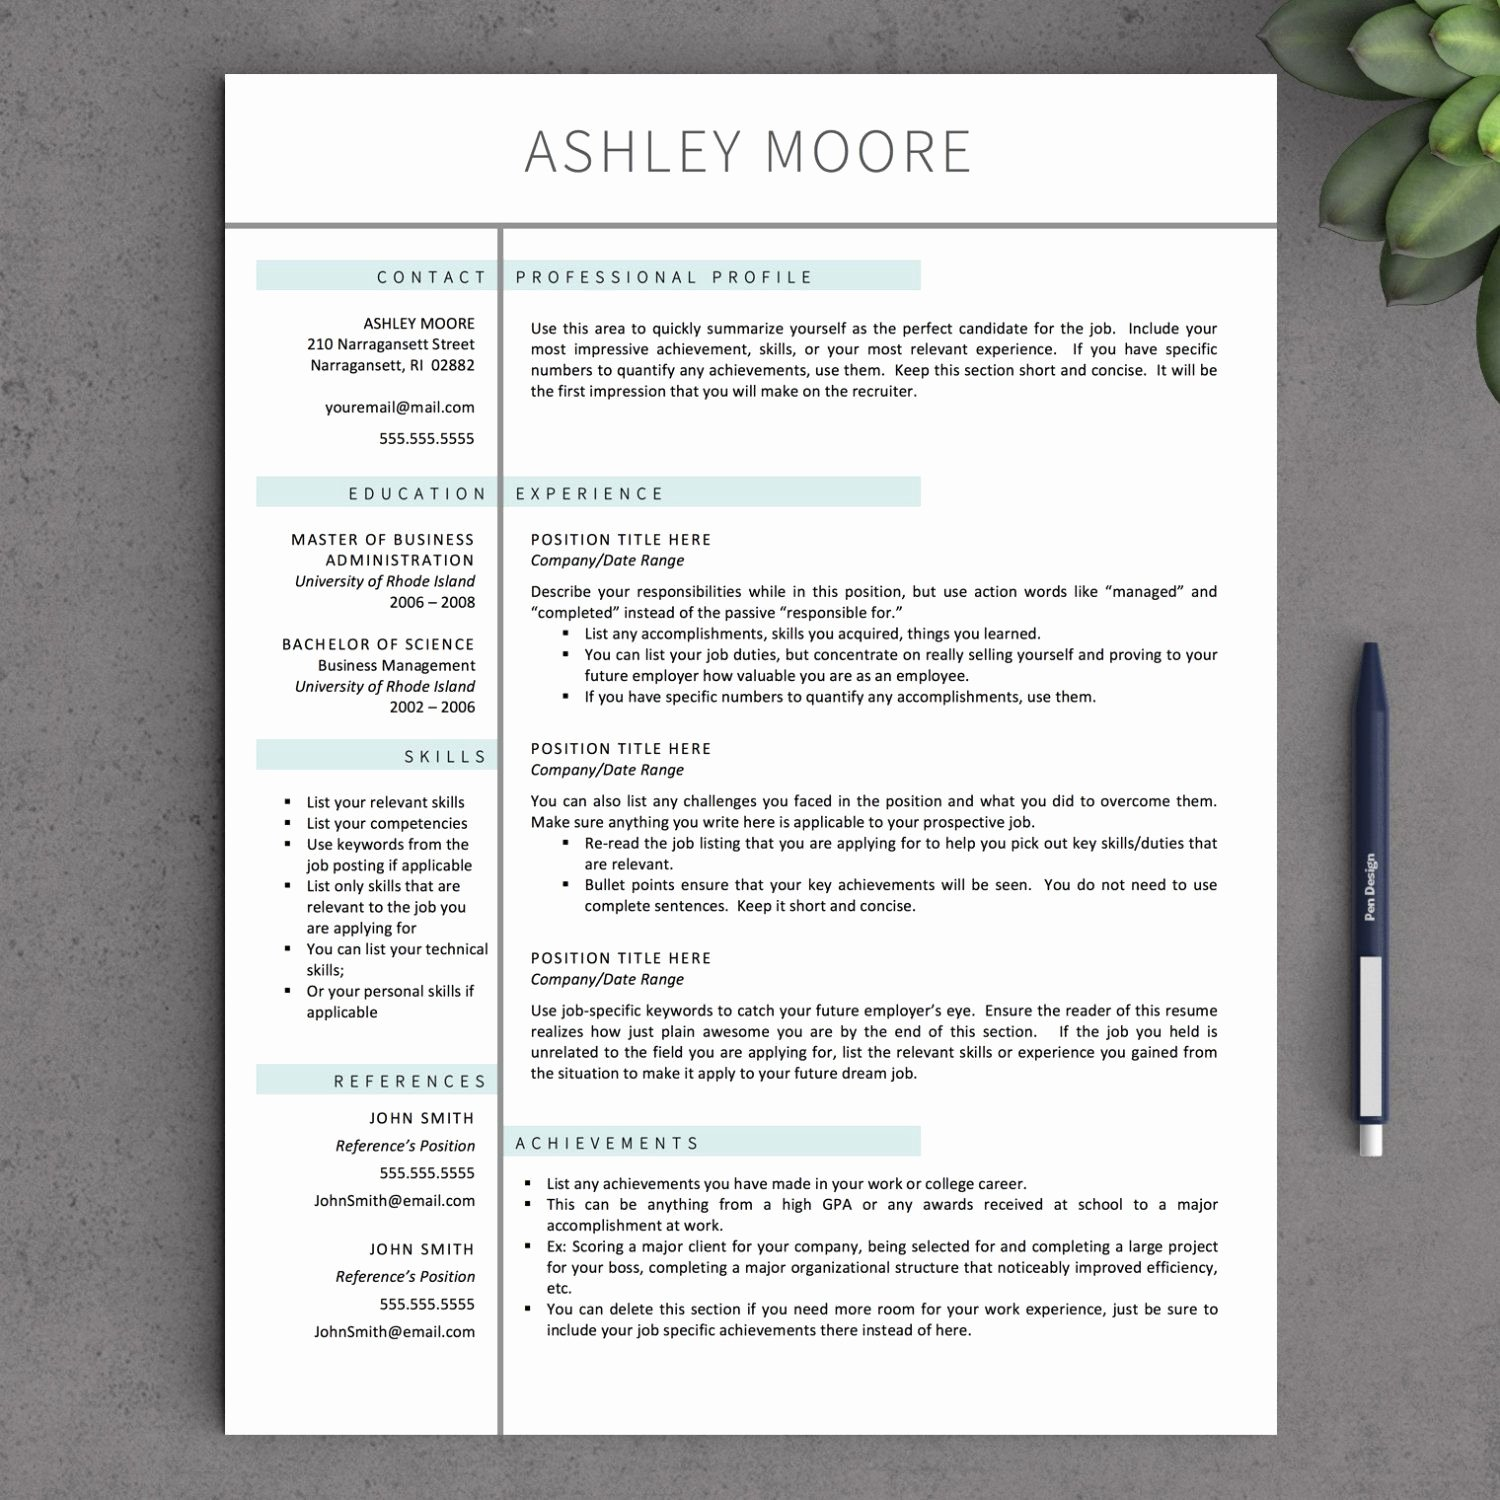 Free Resume Templates for Mac Elegant Apple Pages Resume Template Download Apple Pages Resume